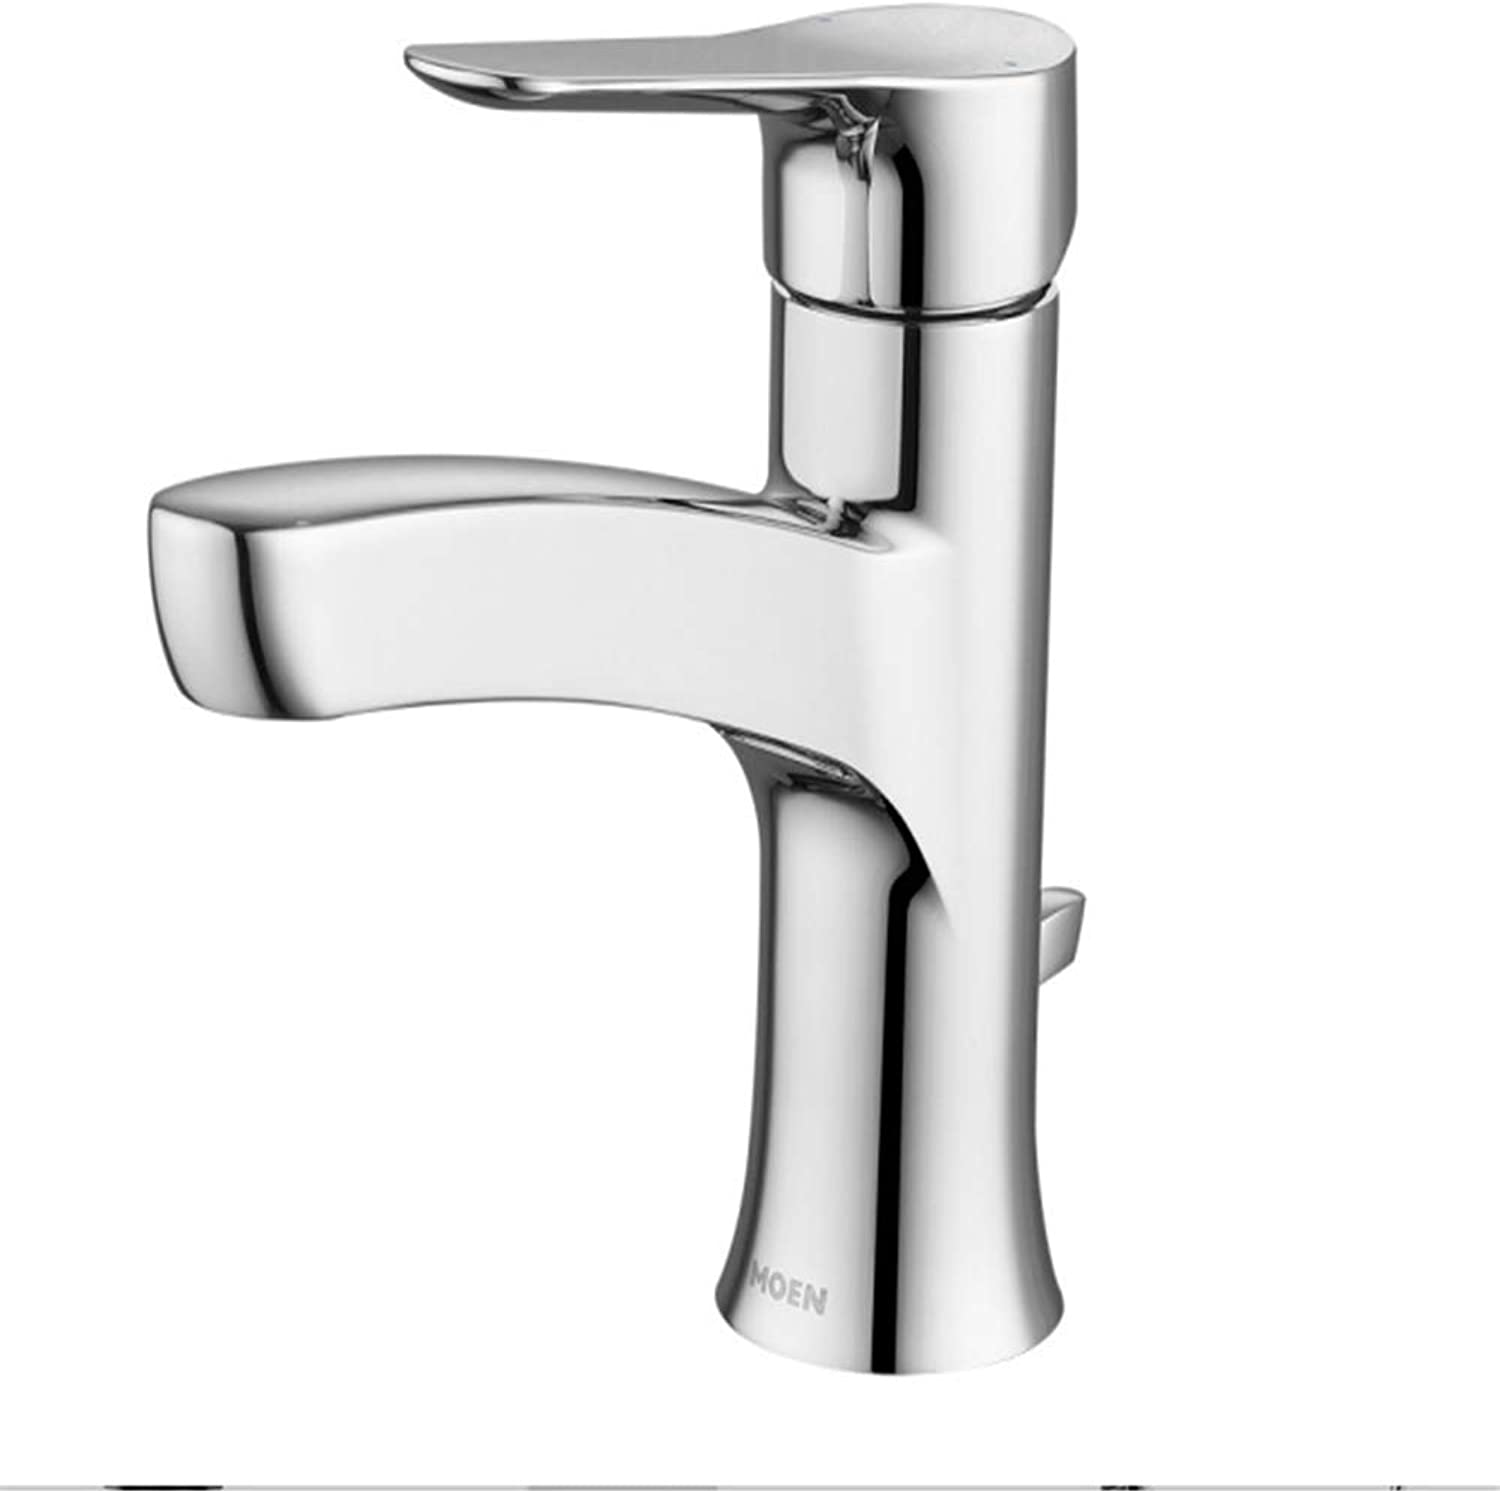 Kitchen Taps Faucet Modern Kitchen Sink Taps Stainless Steelcold and Hot Basin Faucet Single Hole Single Handle Faucet